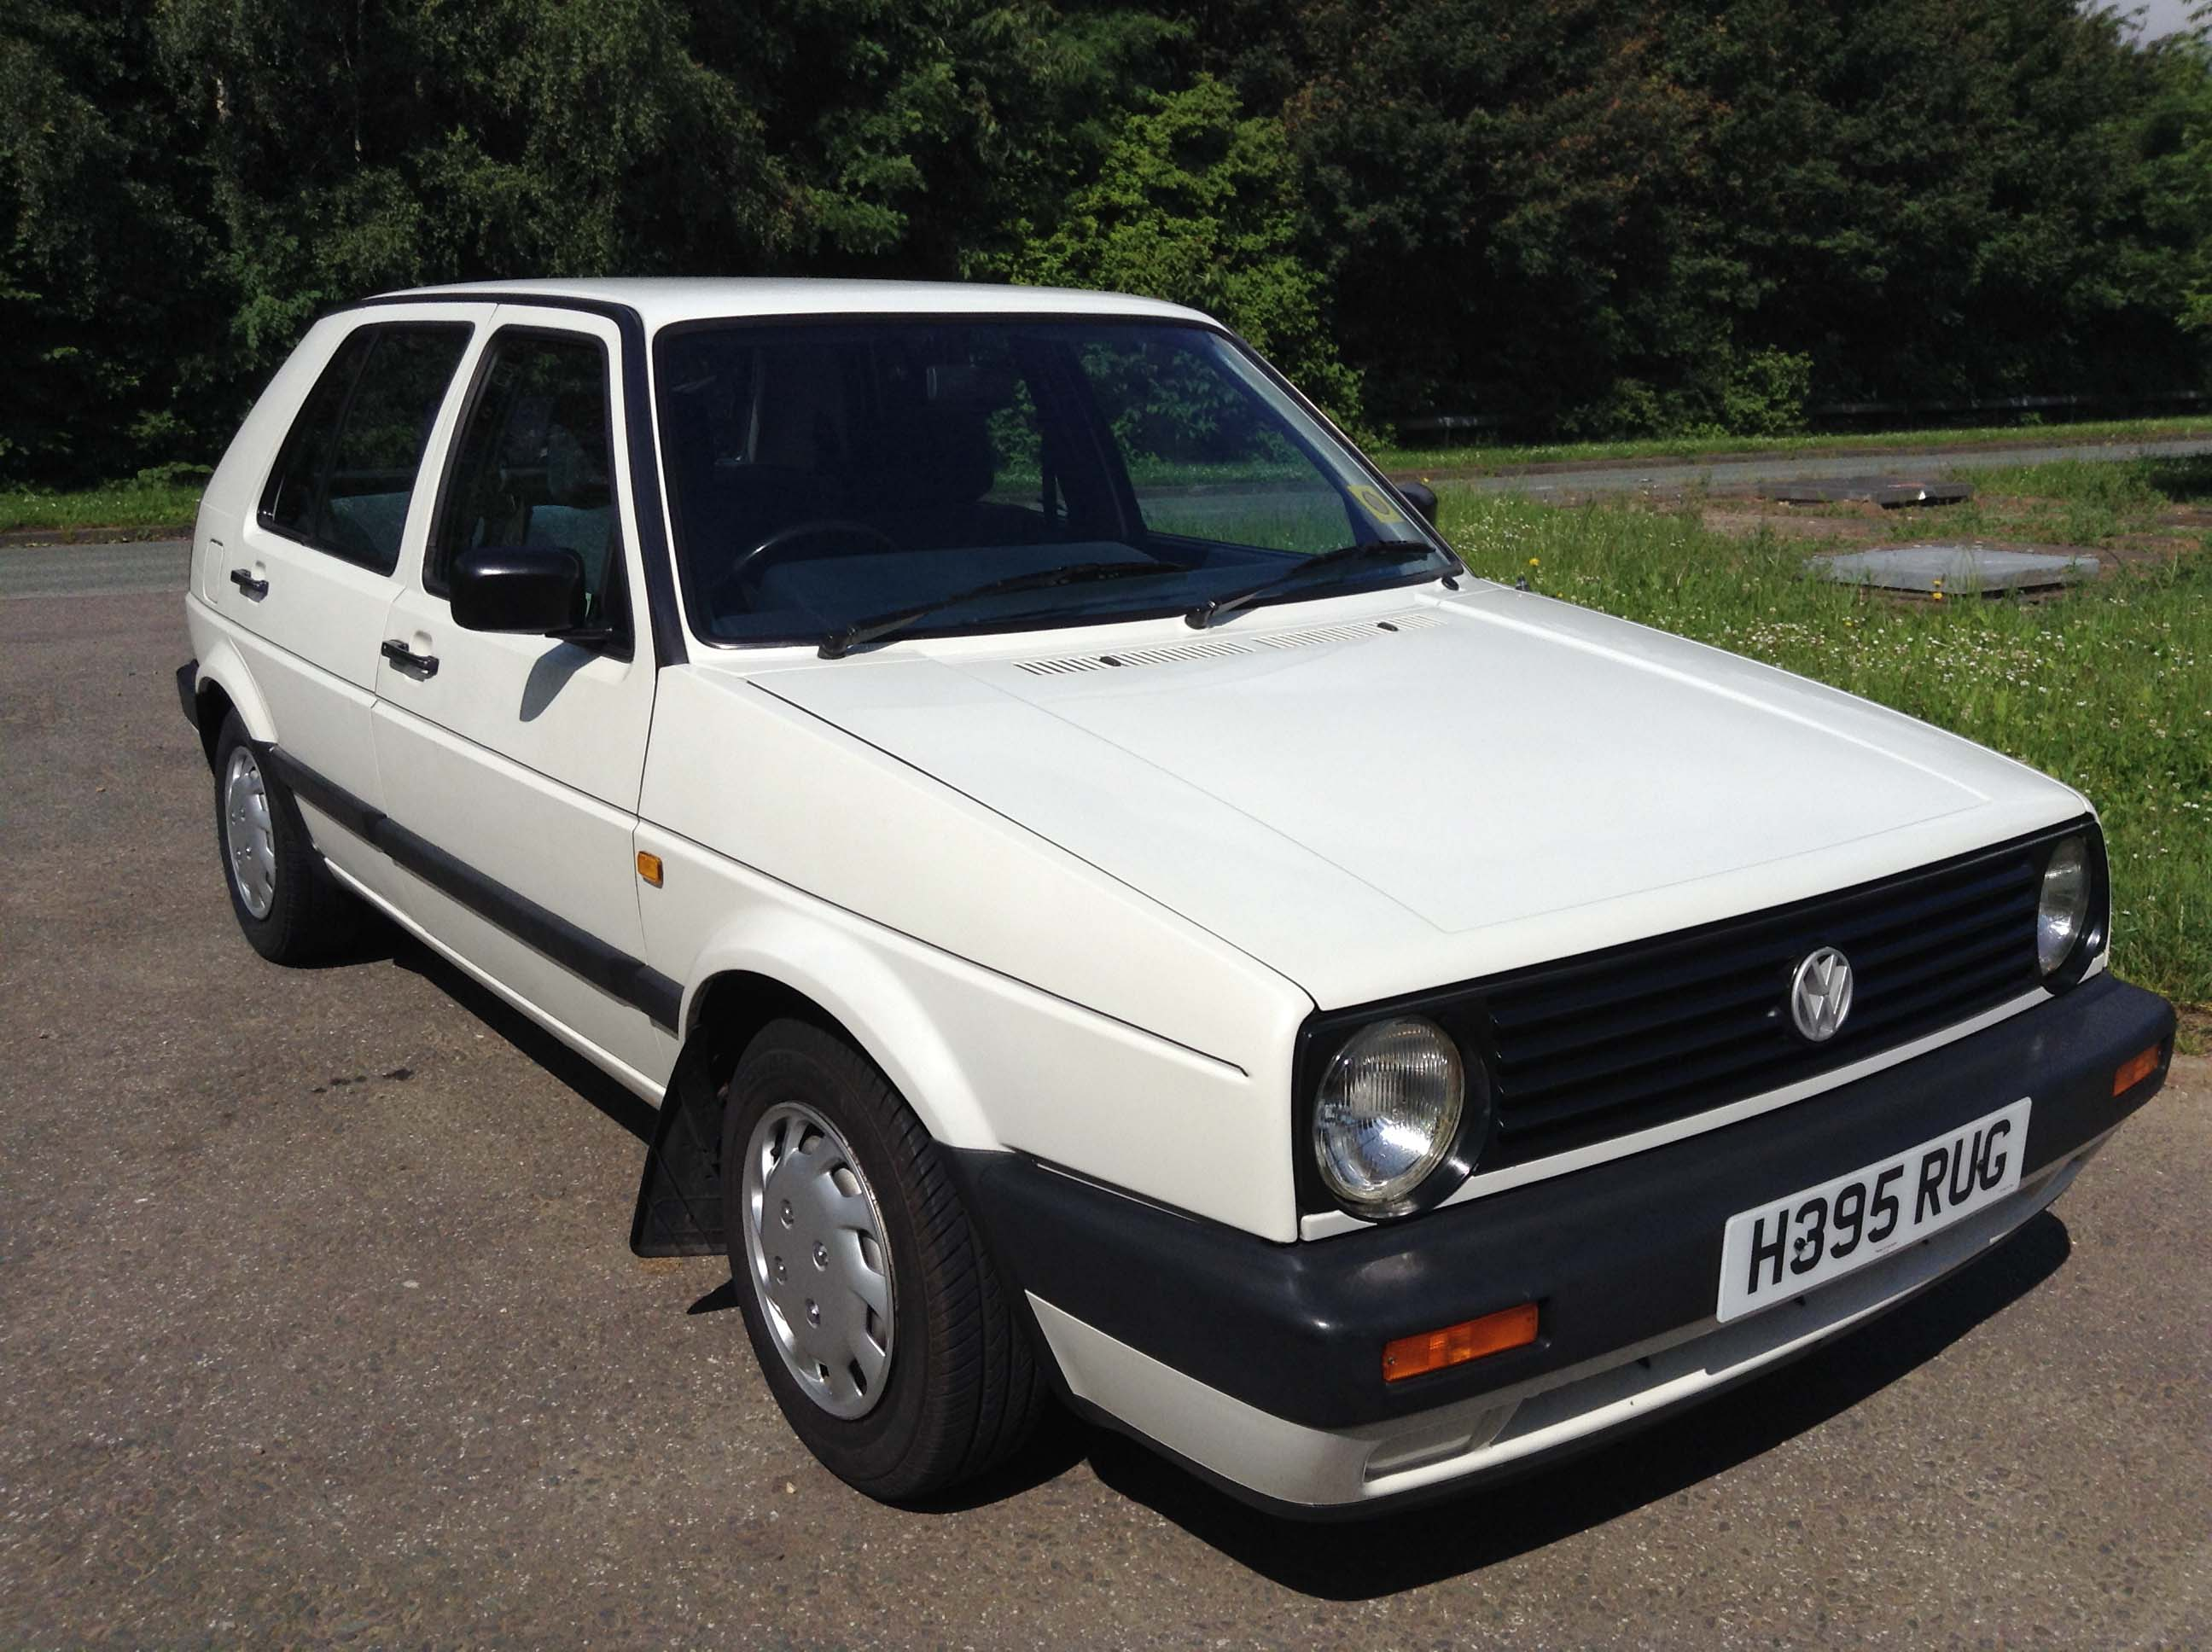 vw golf mk oc cars  sale buy  sell  mk golf  jetta